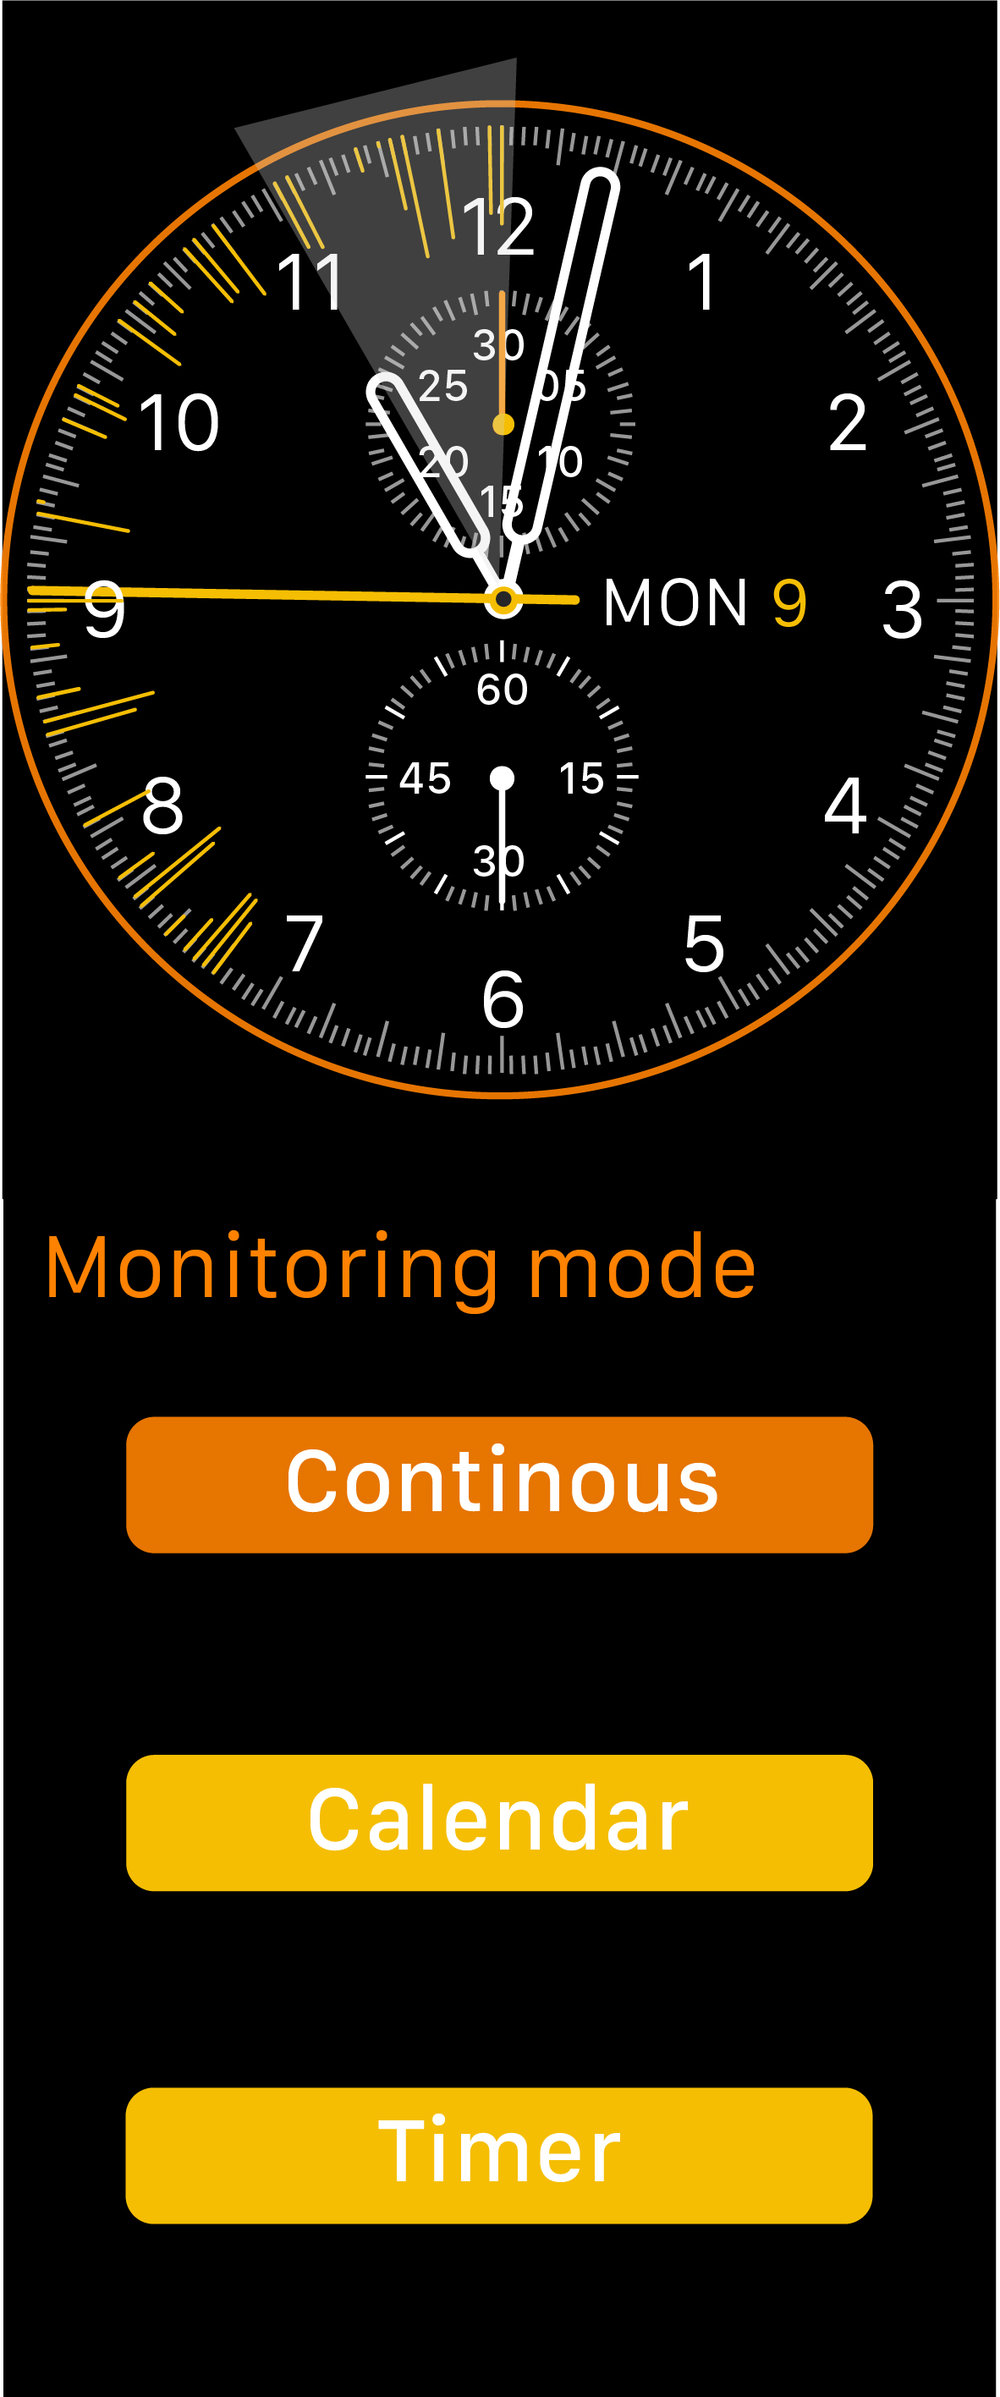 Continuous monitoring mode